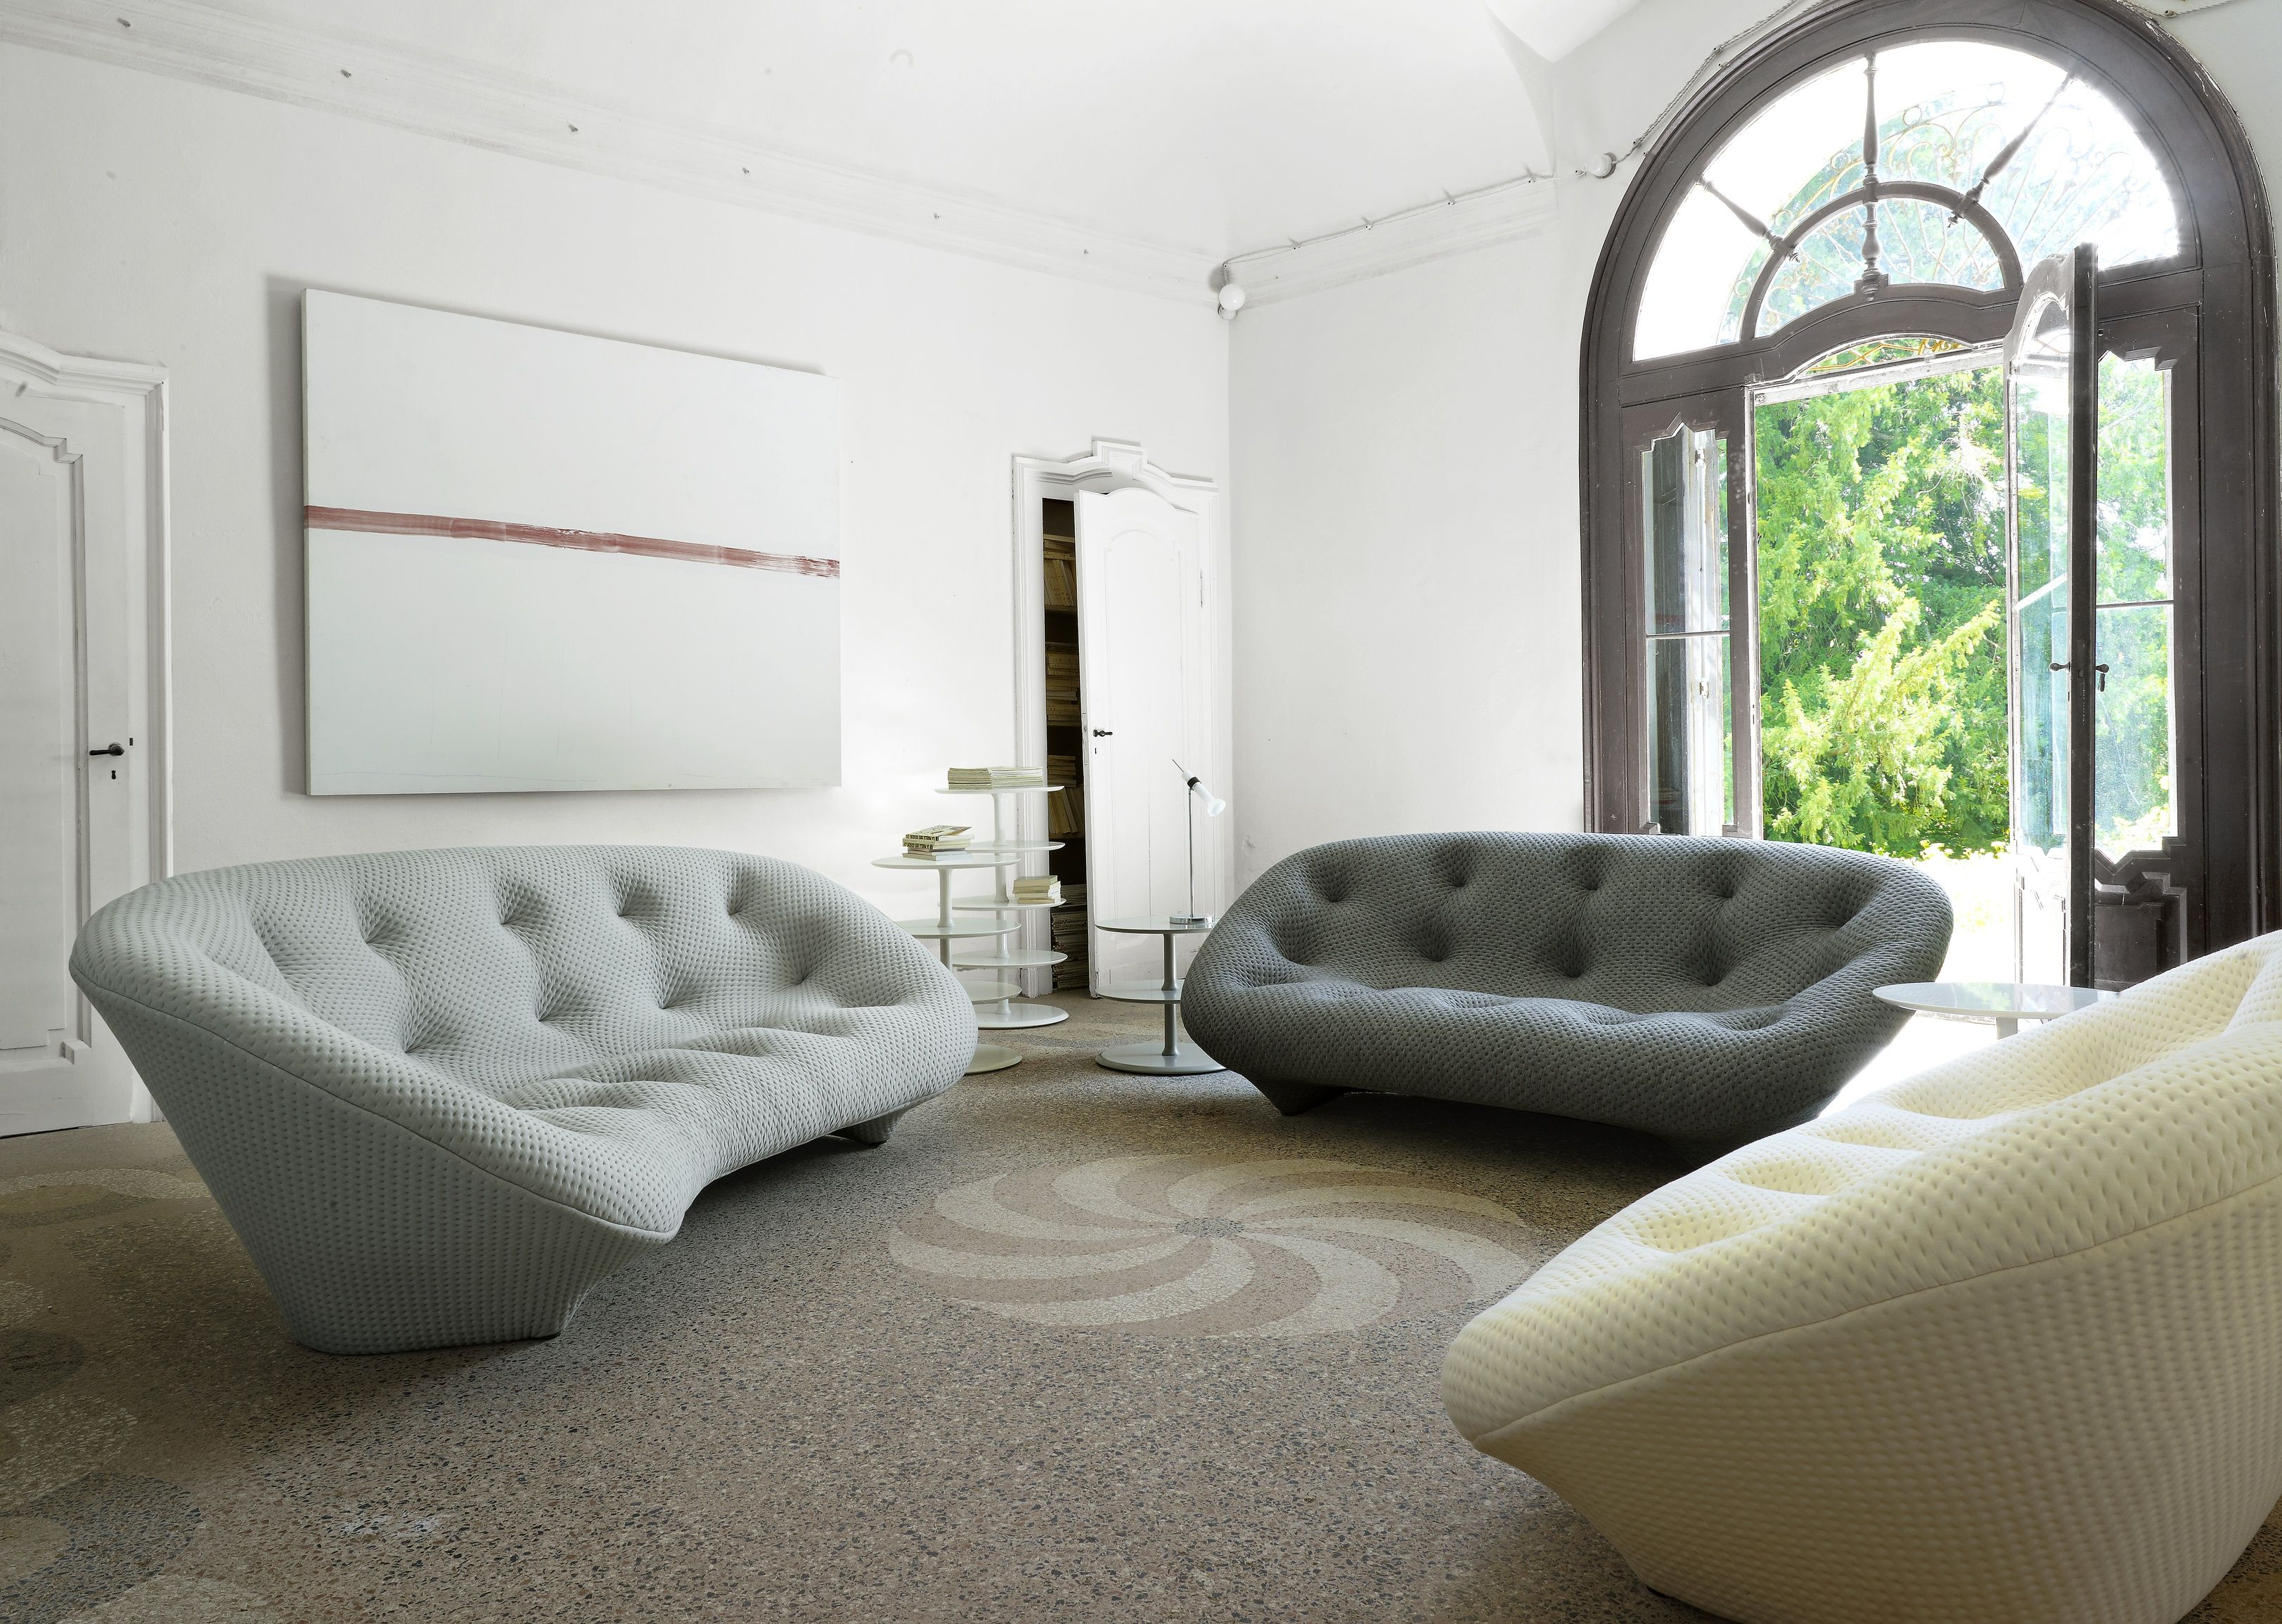 Epingle Sur Hd Upholstered Furniture Chairs Sofas Etc